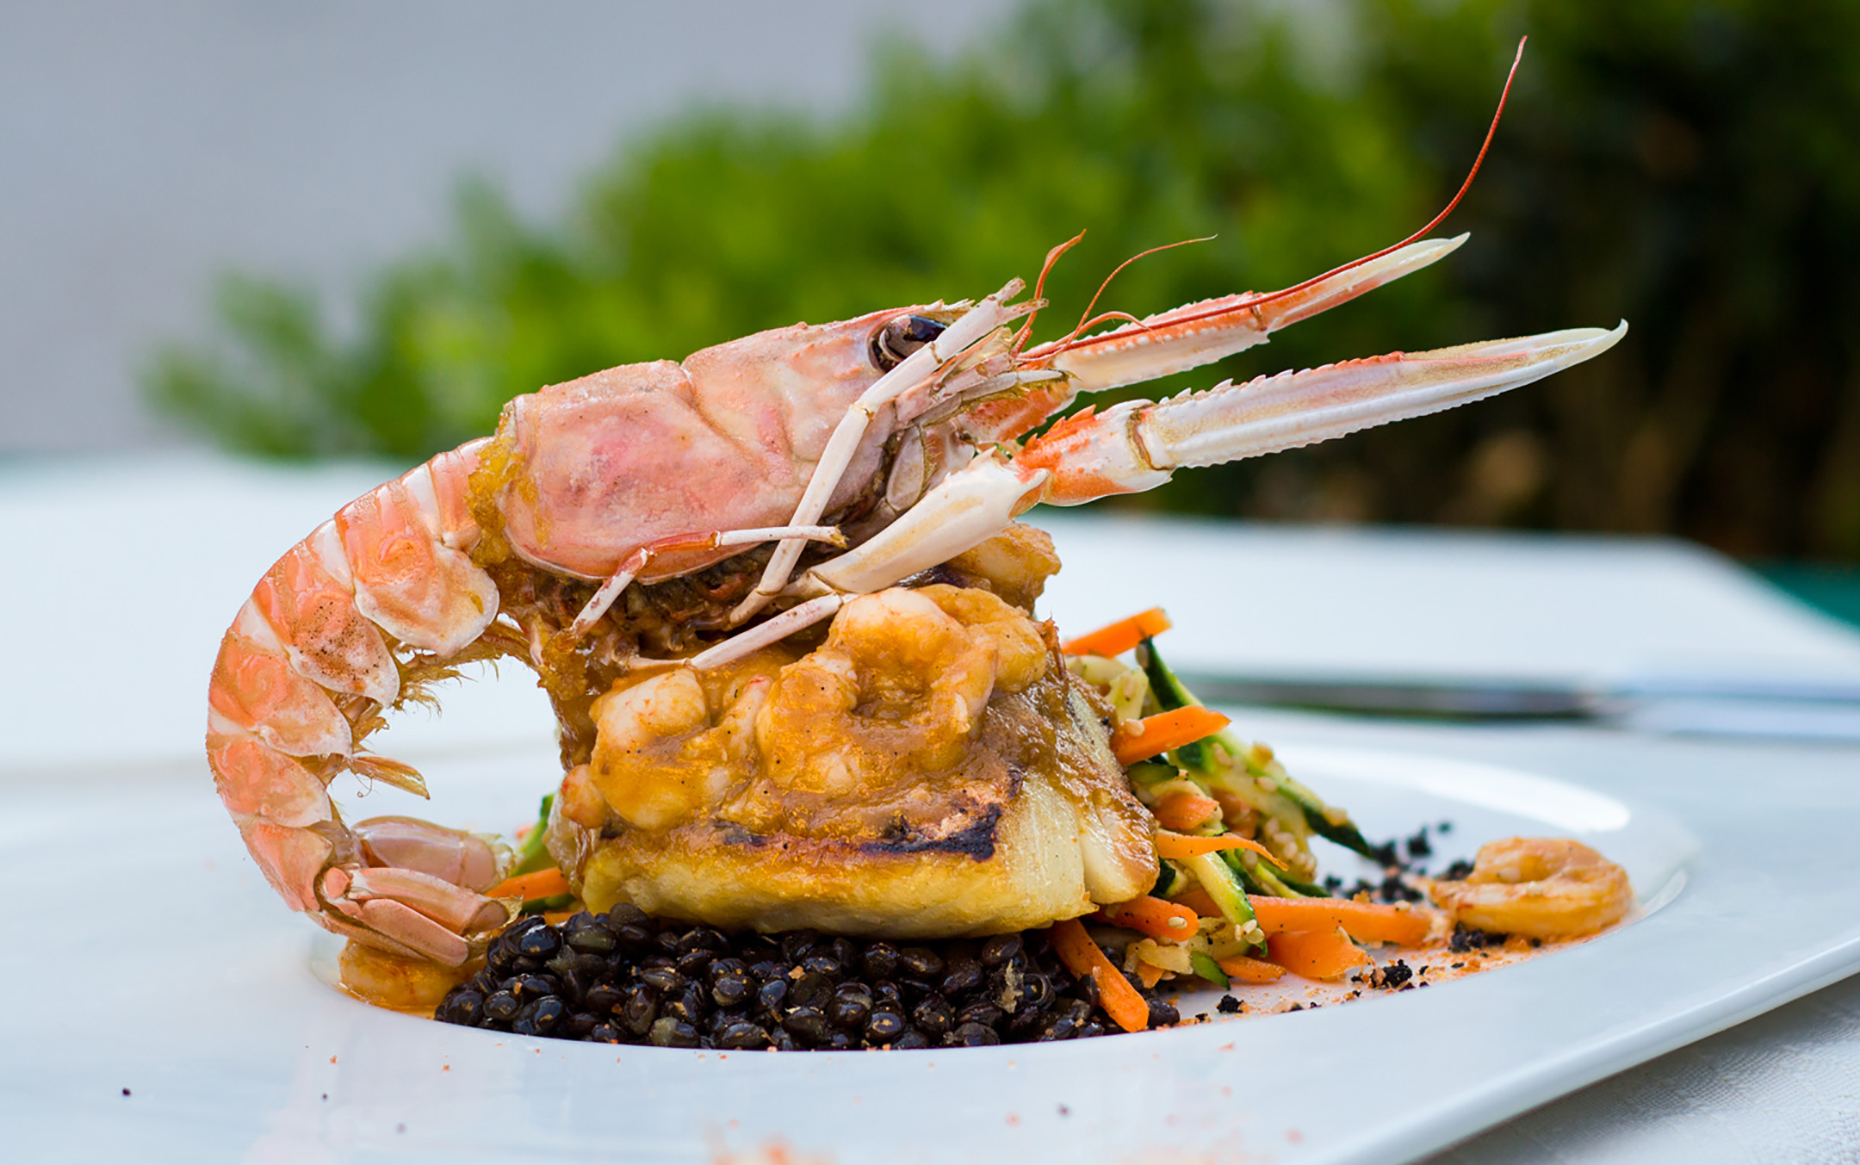 Prawn dish at Restaurant Kopun (Image: Restaurant Kopun/Facebook)